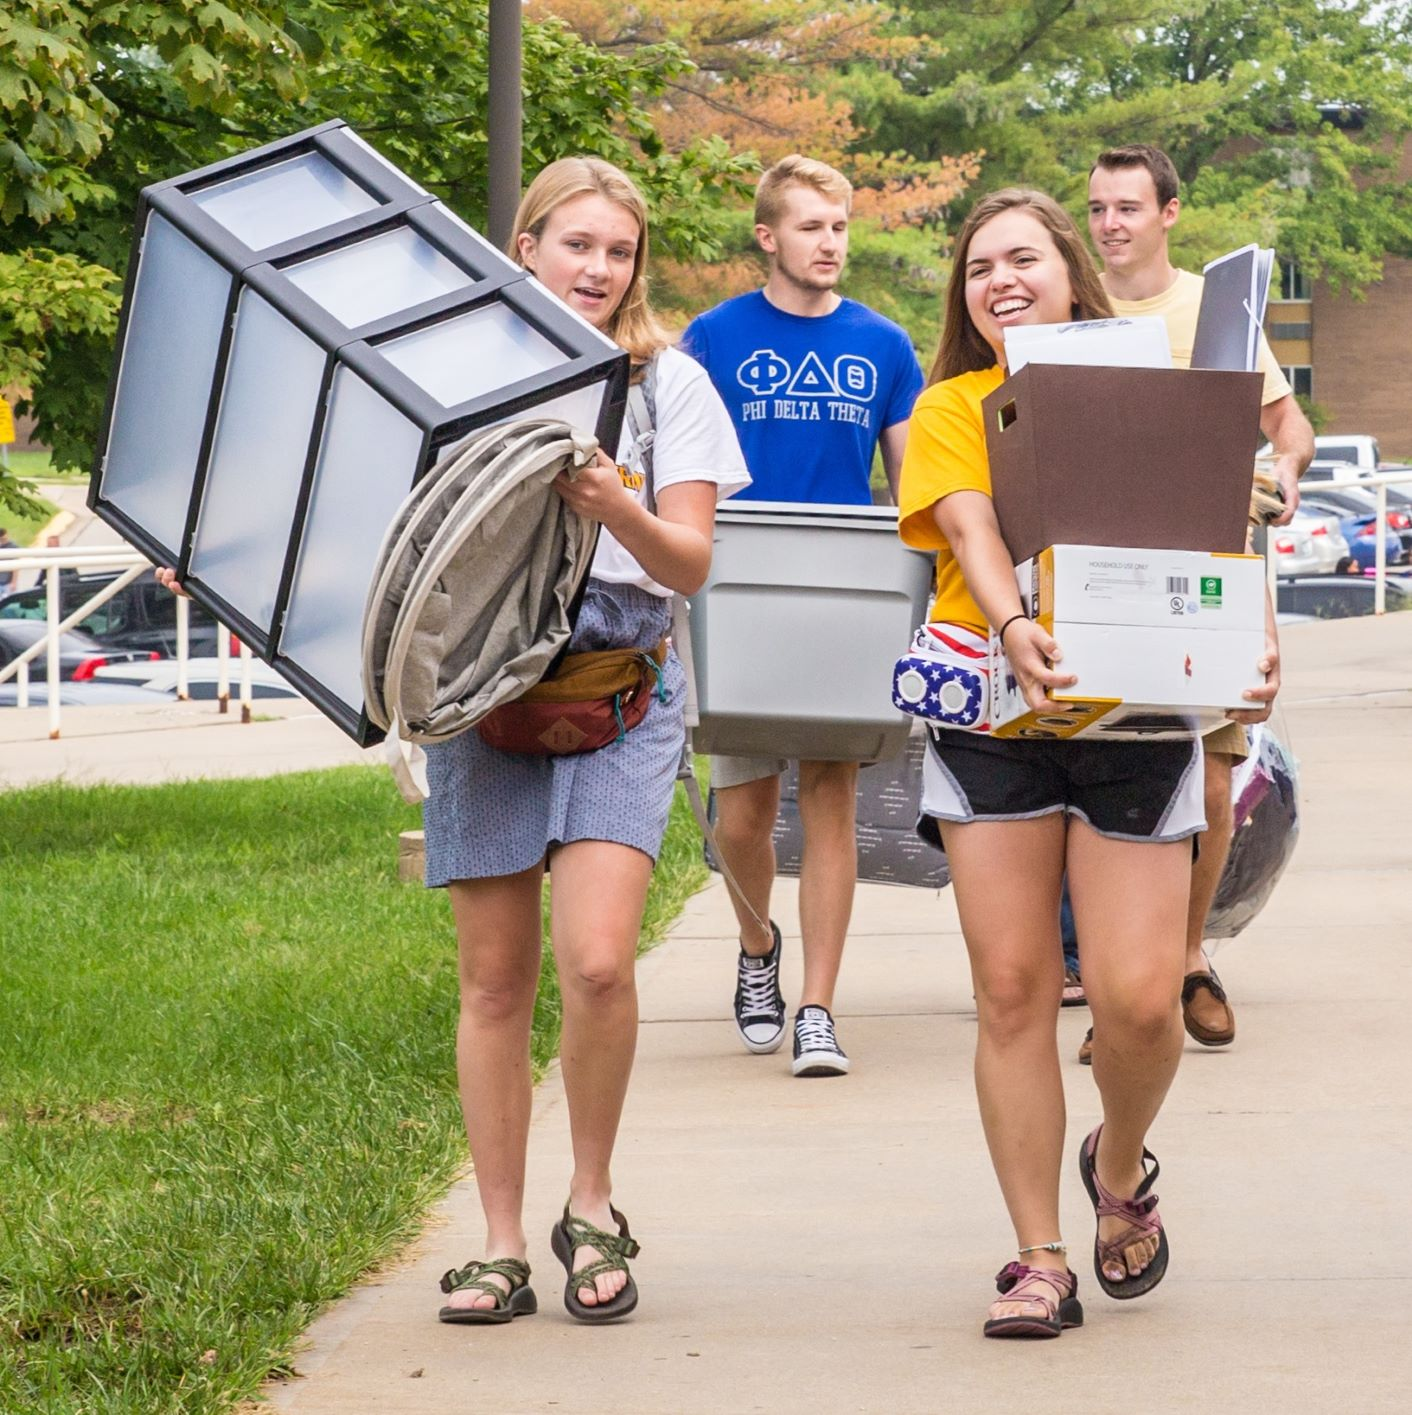 two students carry boxes and containers across campus